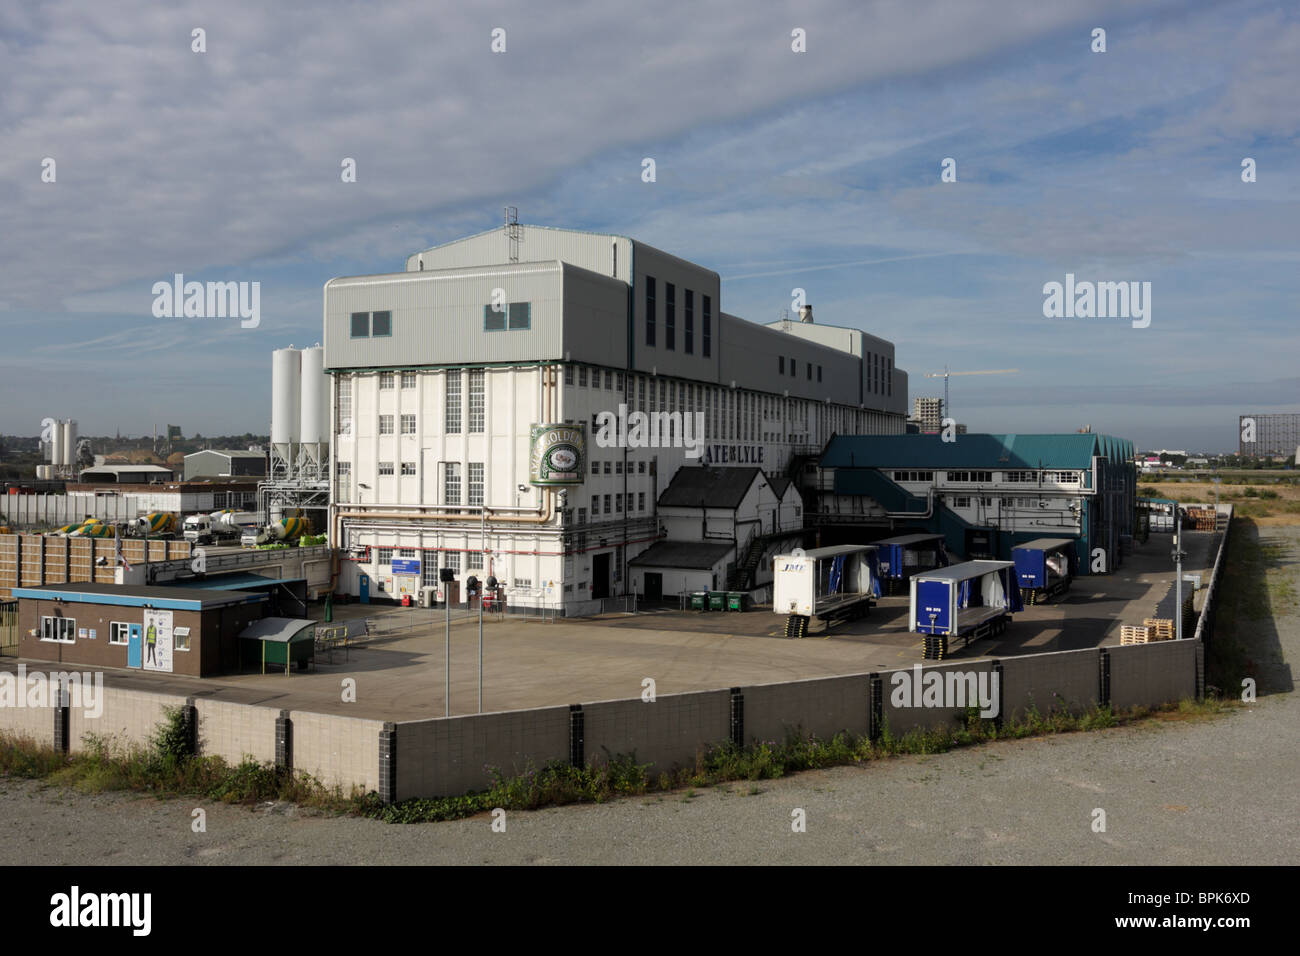 One of the two major Tate and Lyle sugar factories situated at West Silvertown in east London. - Stock Image